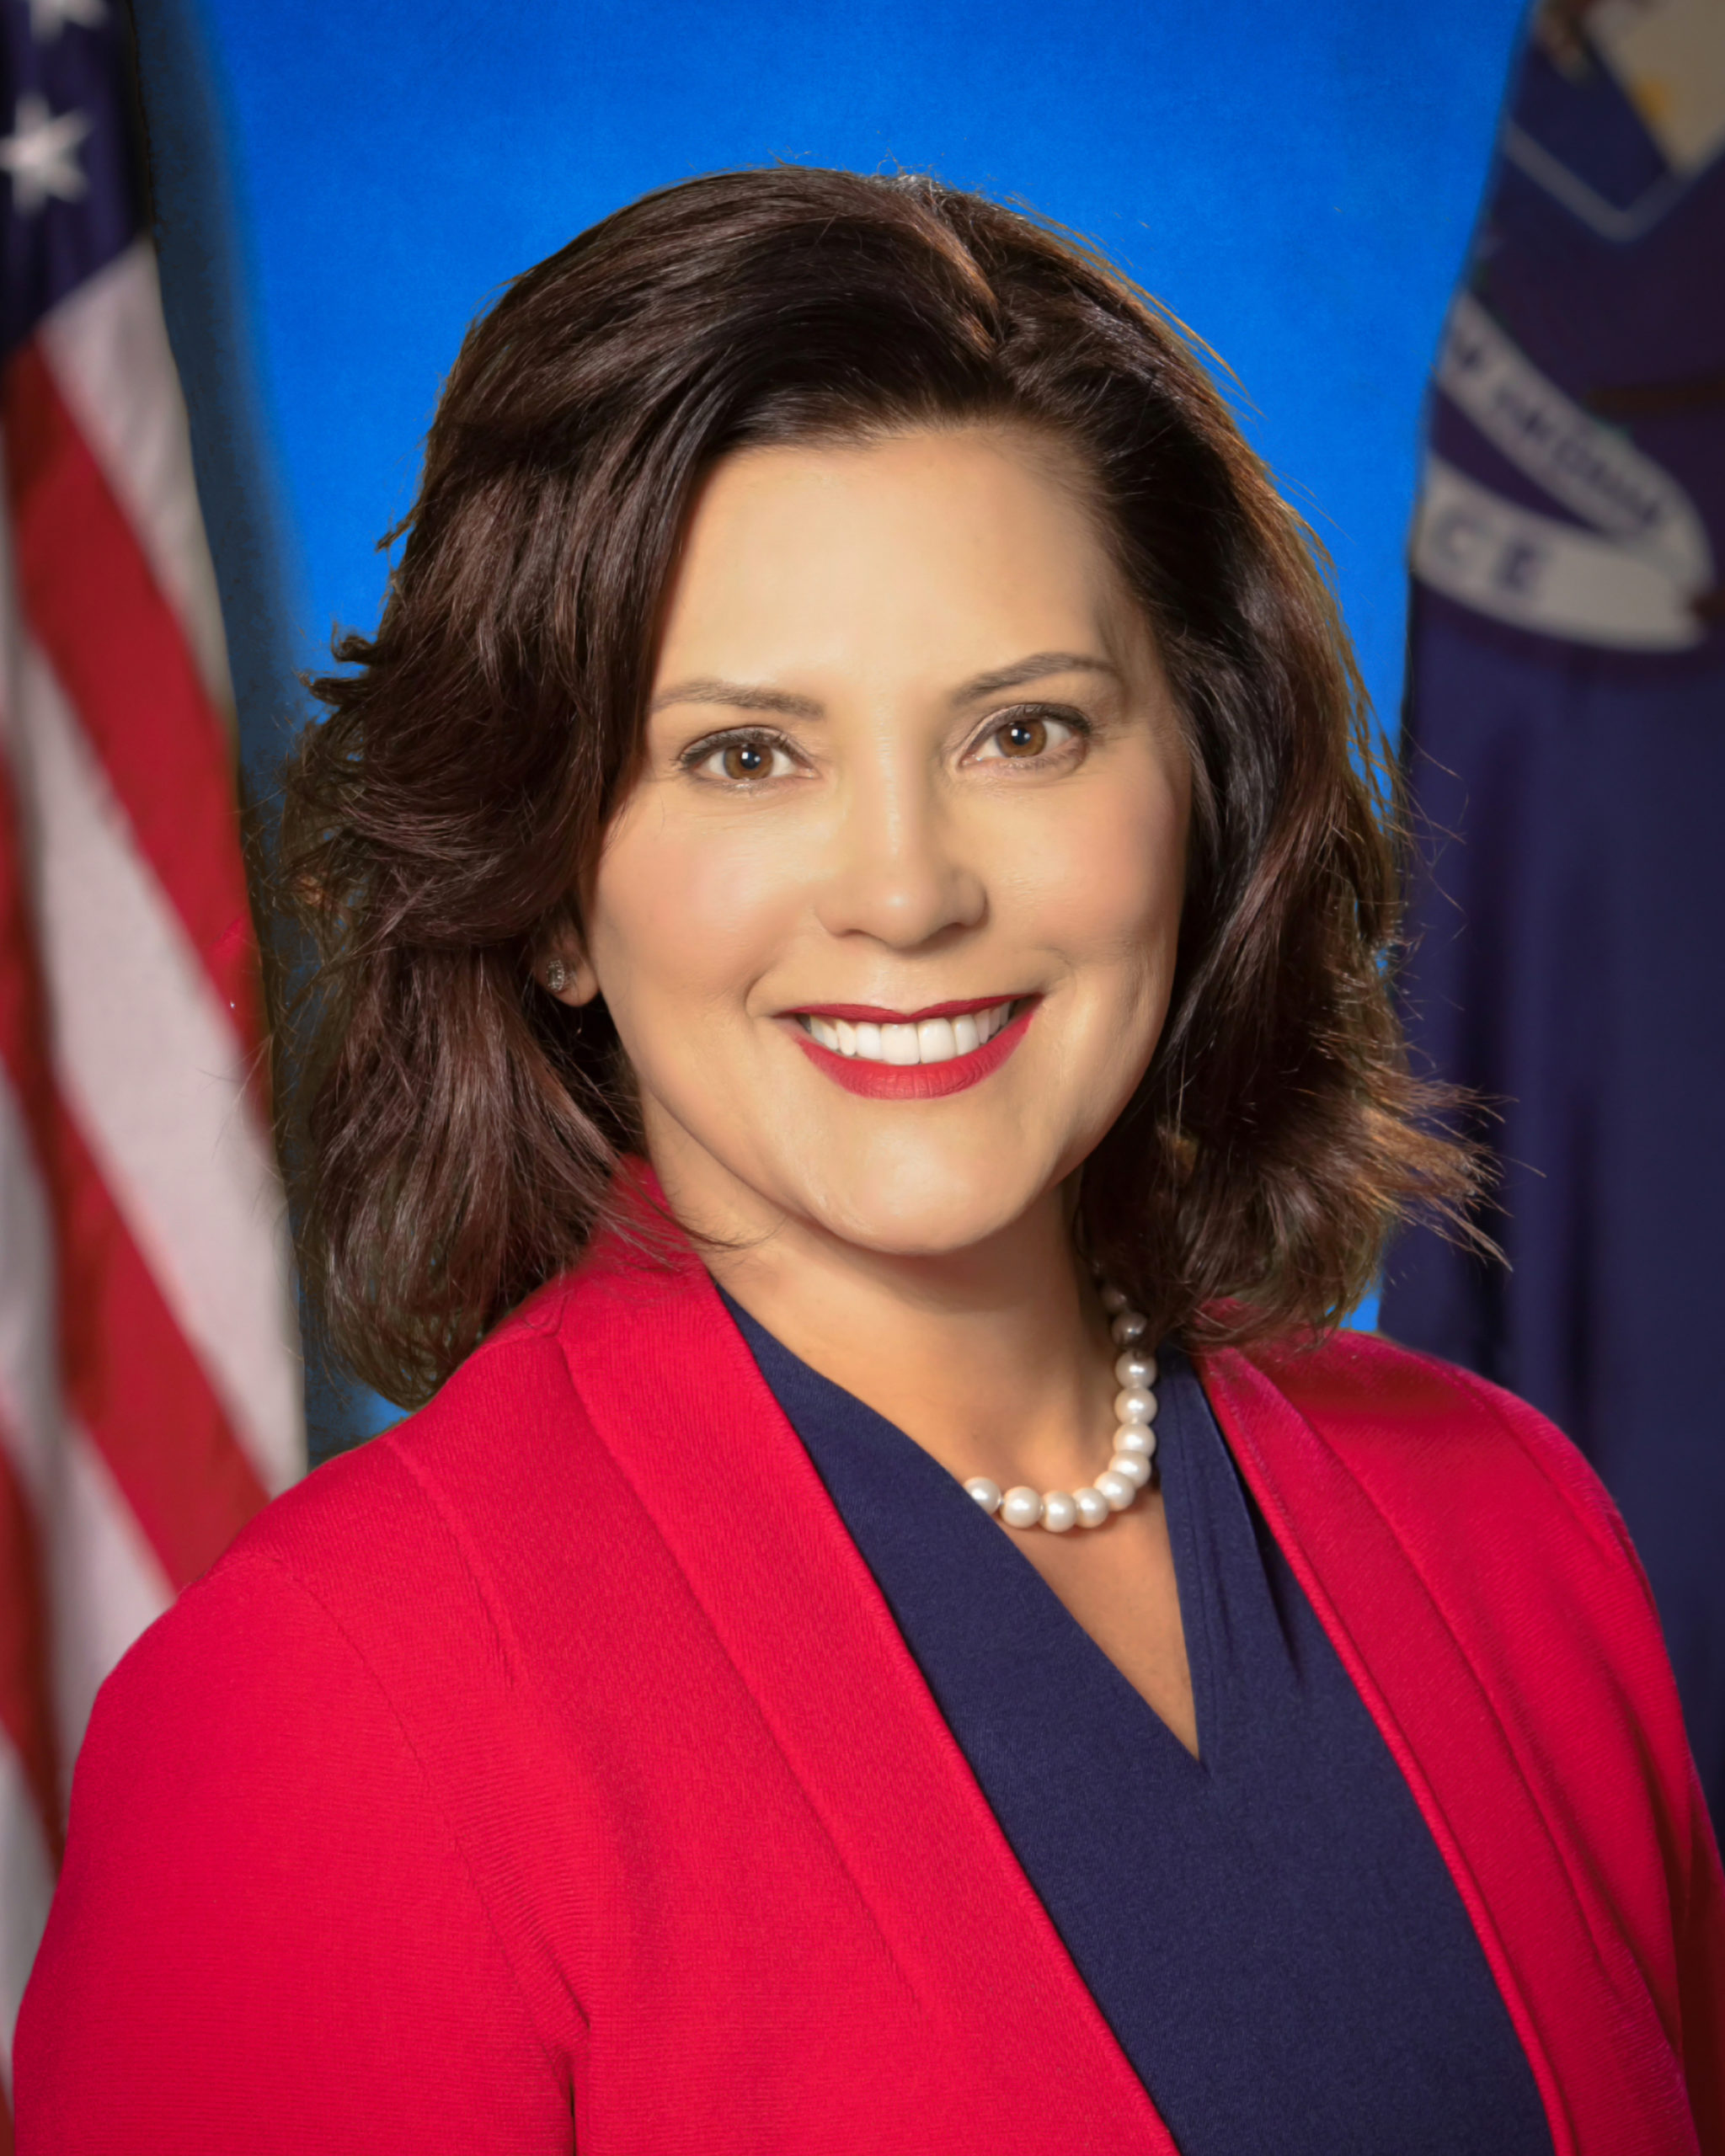 A portrait of Gretchen Whitmer in front of two flags